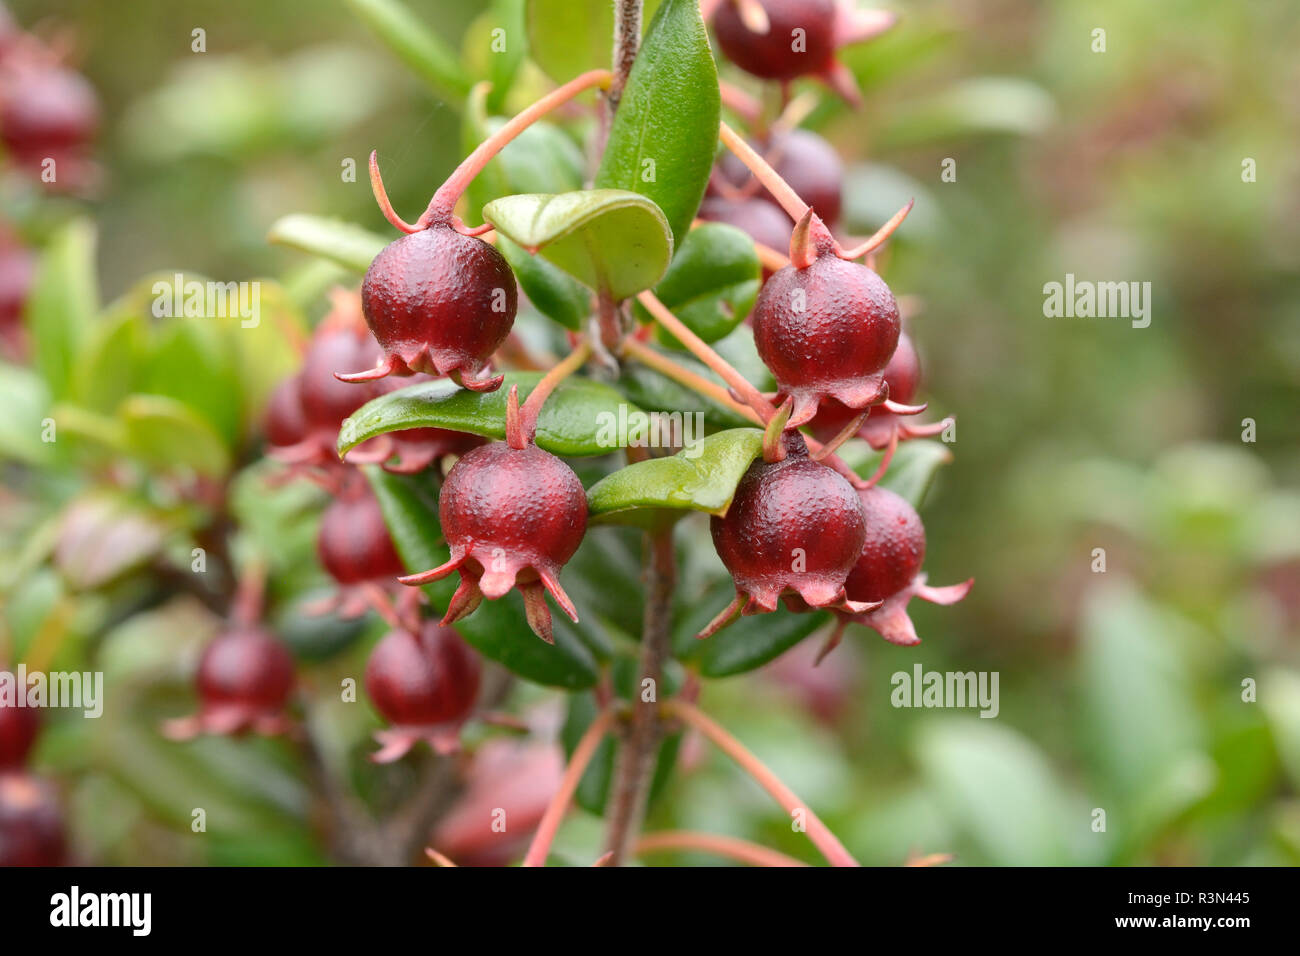 Chilean guava (Ugni molinae), Myrtaceae endemic to Chile, Unripe berries, Chiloe National Park, Cucao, Chiloe Island, X Region of the Lakes, Chile - Stock Image